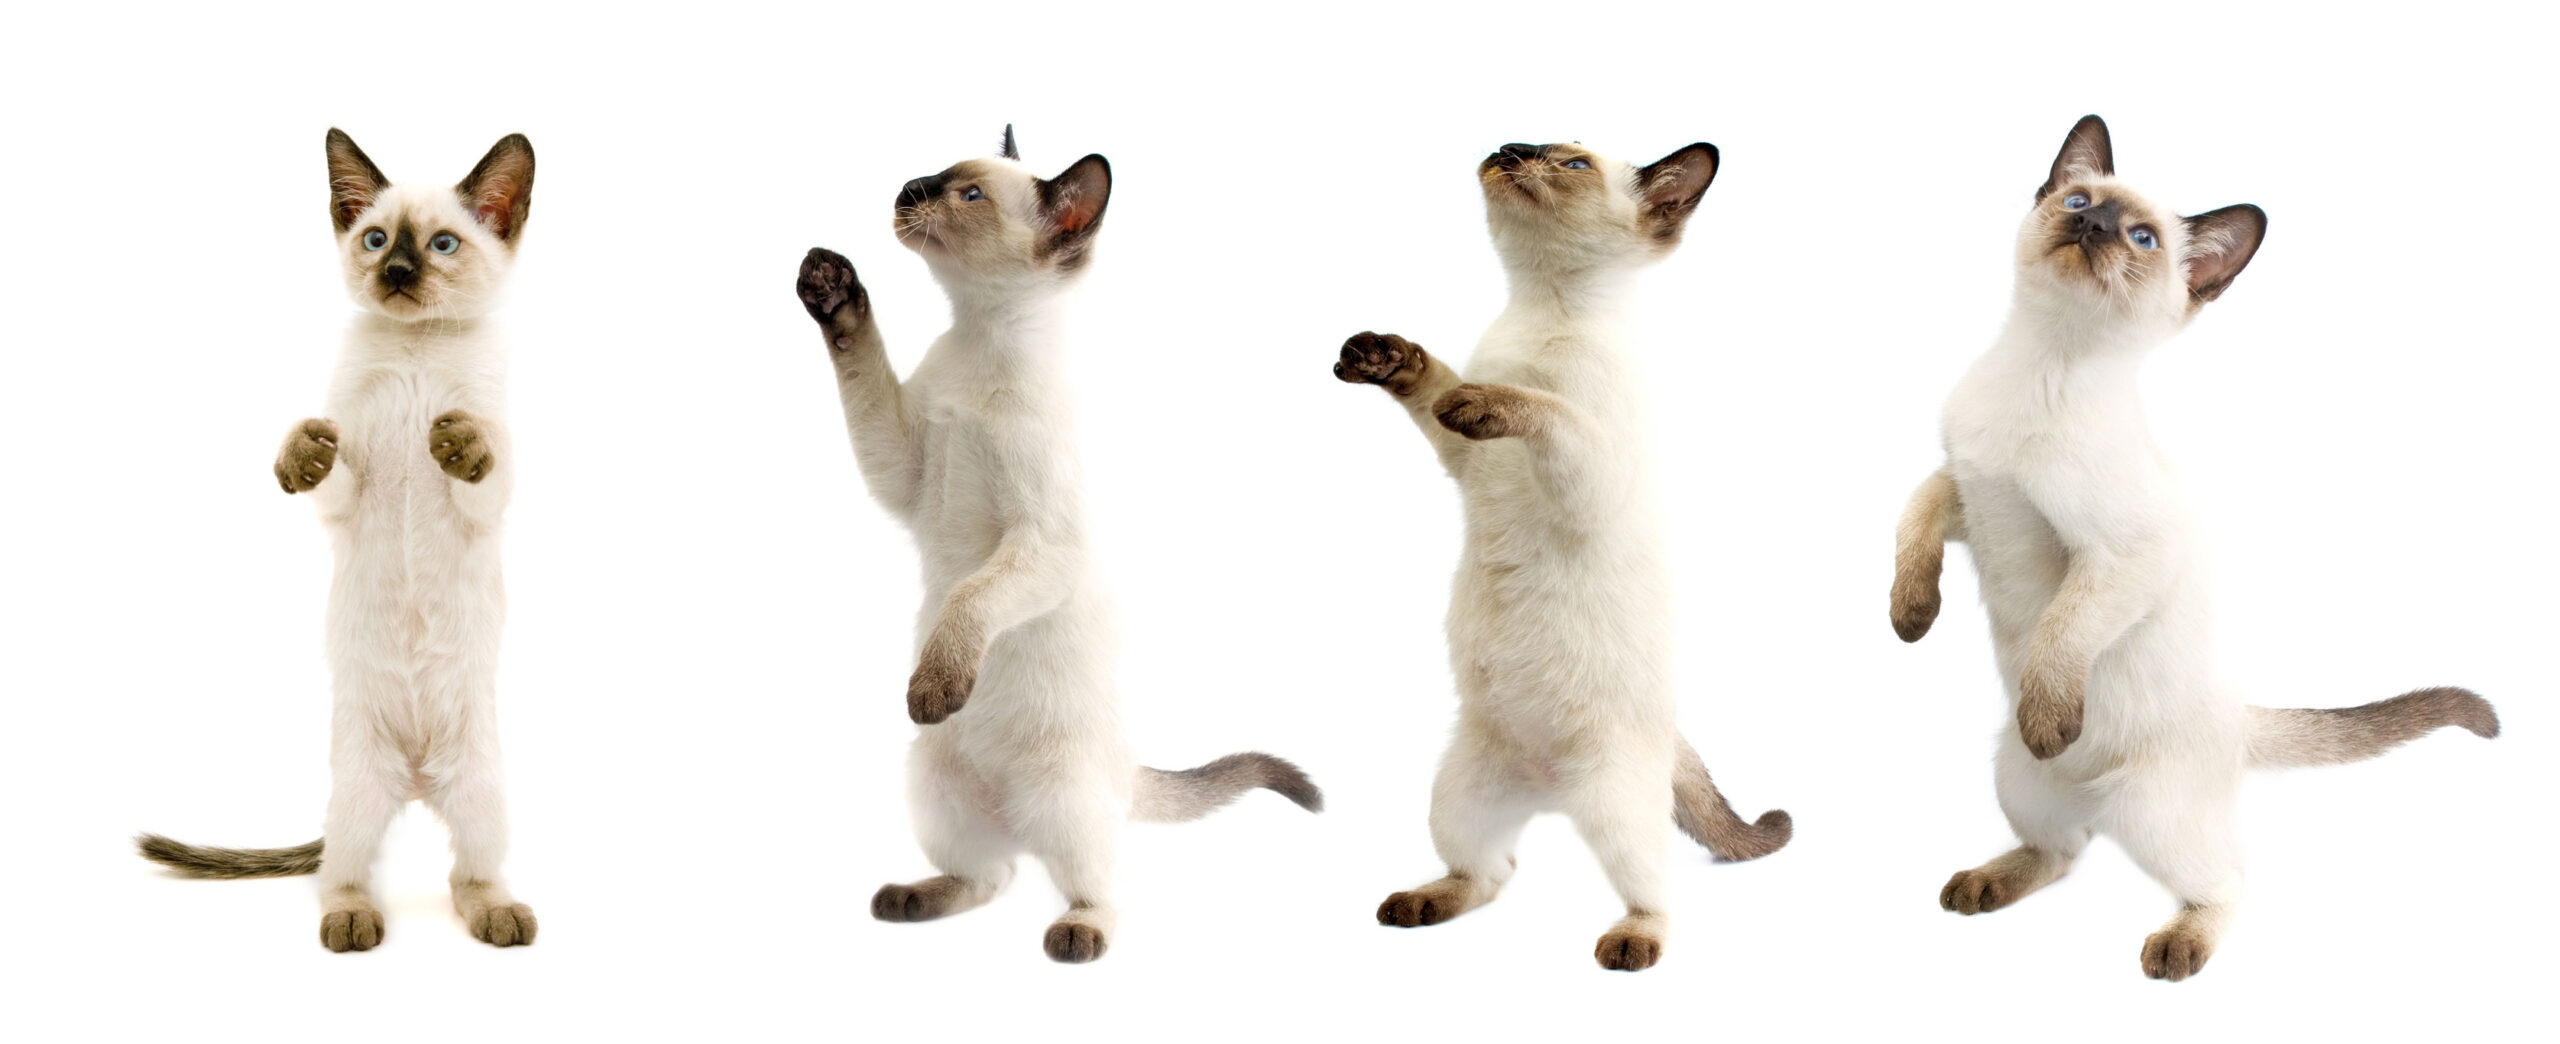 Four cute Siamese cat dancing on a white background